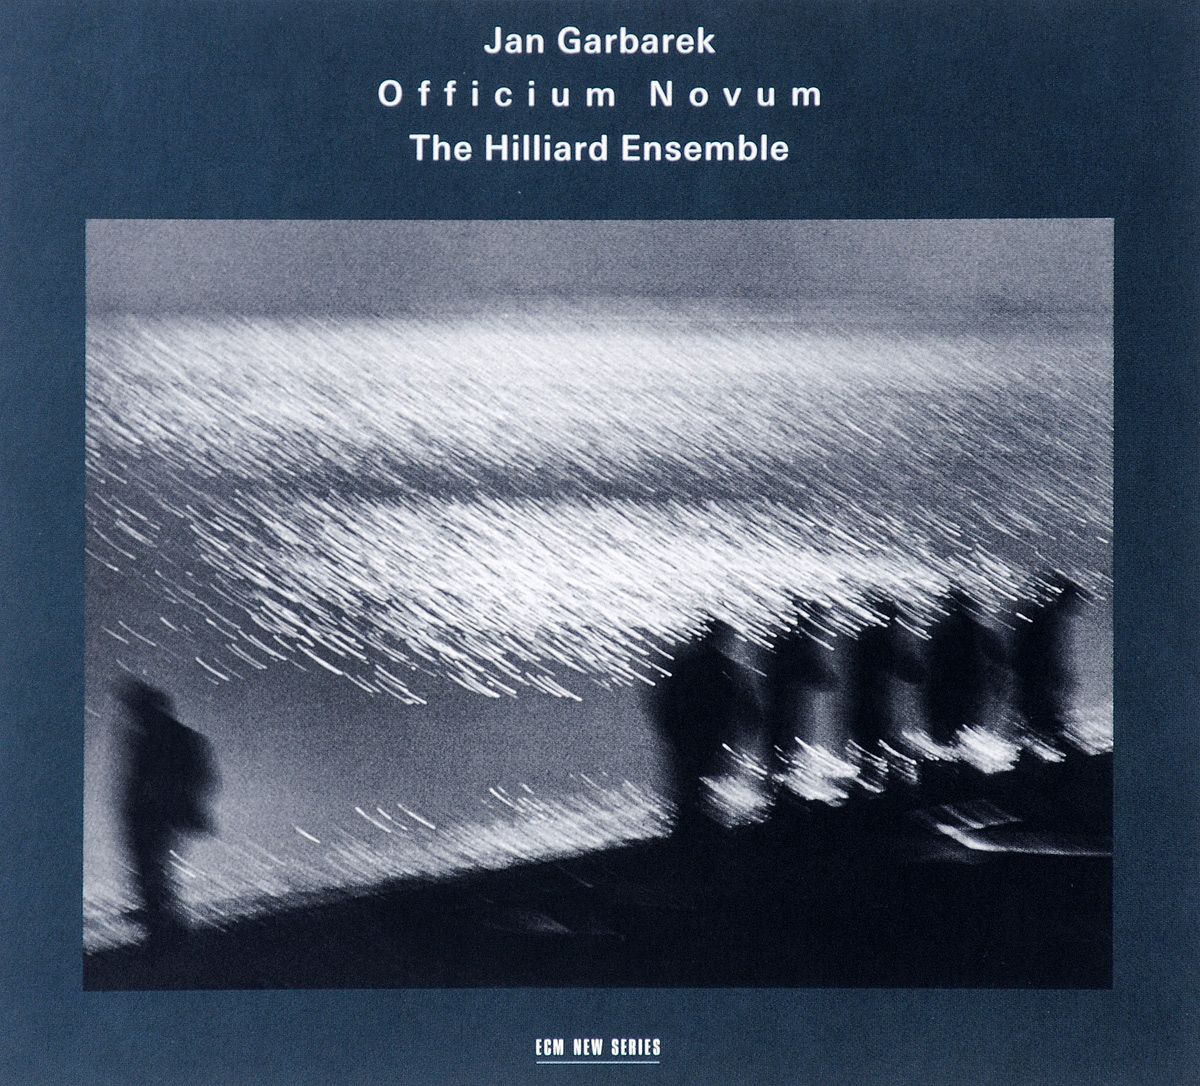 Zakazat.ru Jan Garbarek, The Hilliard Ensemble. Officium Novum